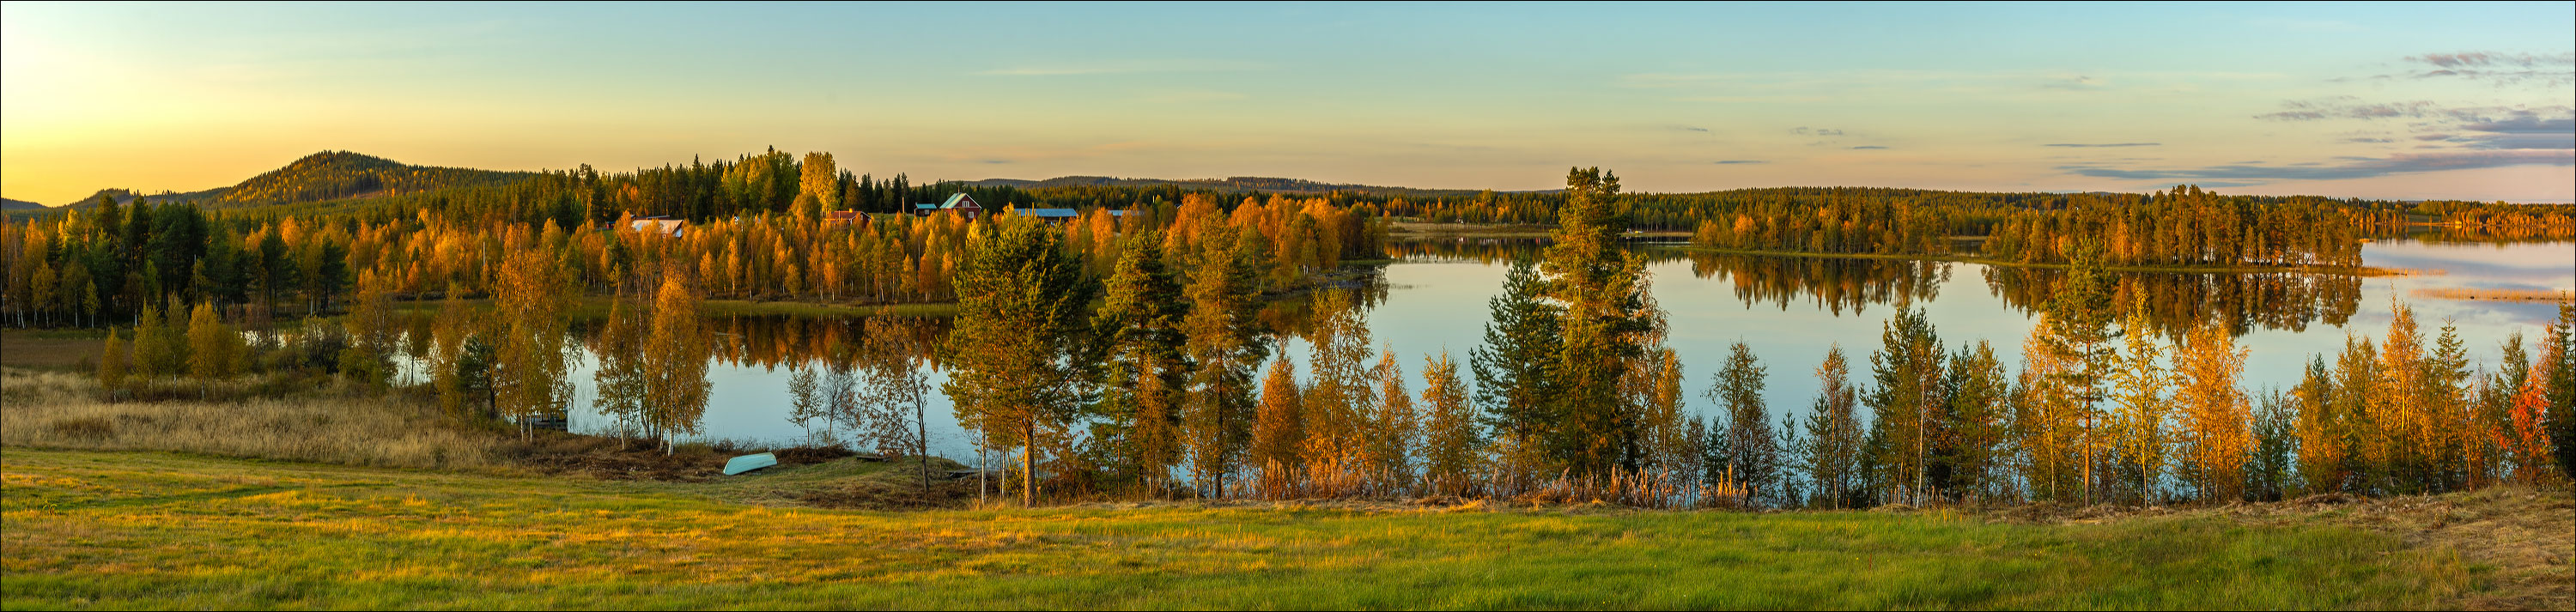 °°° Herbst in Lappland °°°